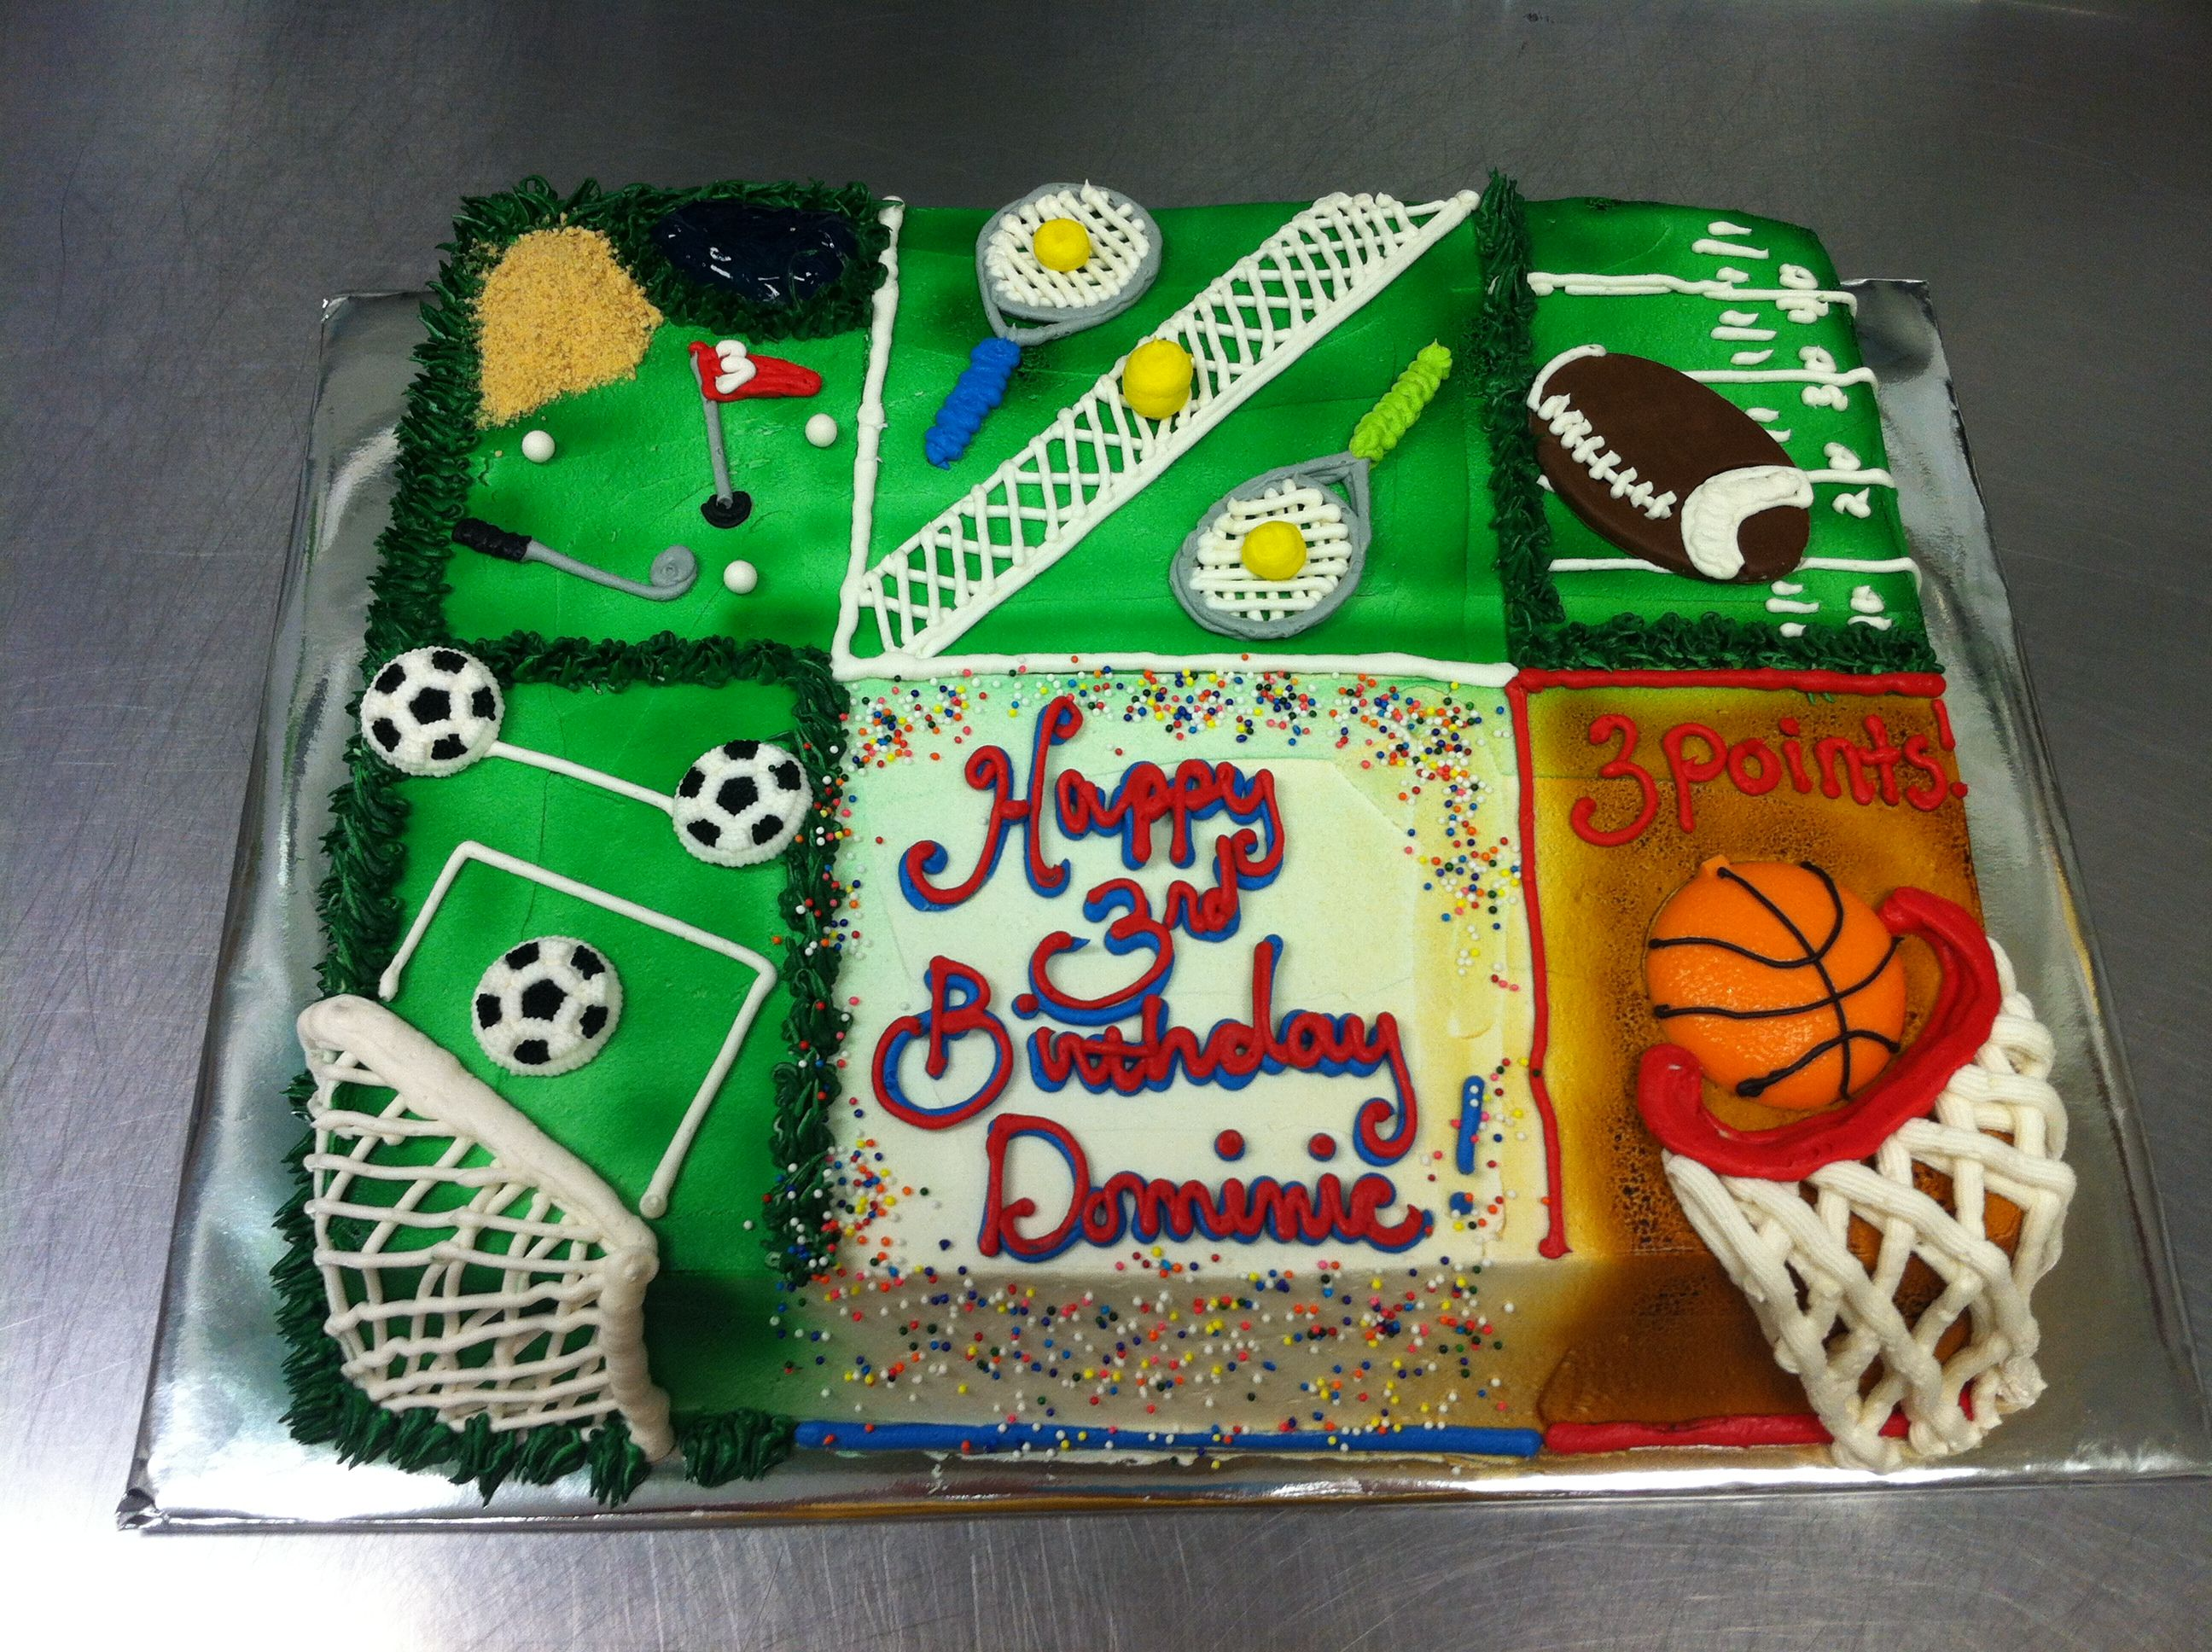 Enjoyable All Star Sports Themed Cake With Images Sports Themed Cakes Funny Birthday Cards Online Bapapcheapnameinfo